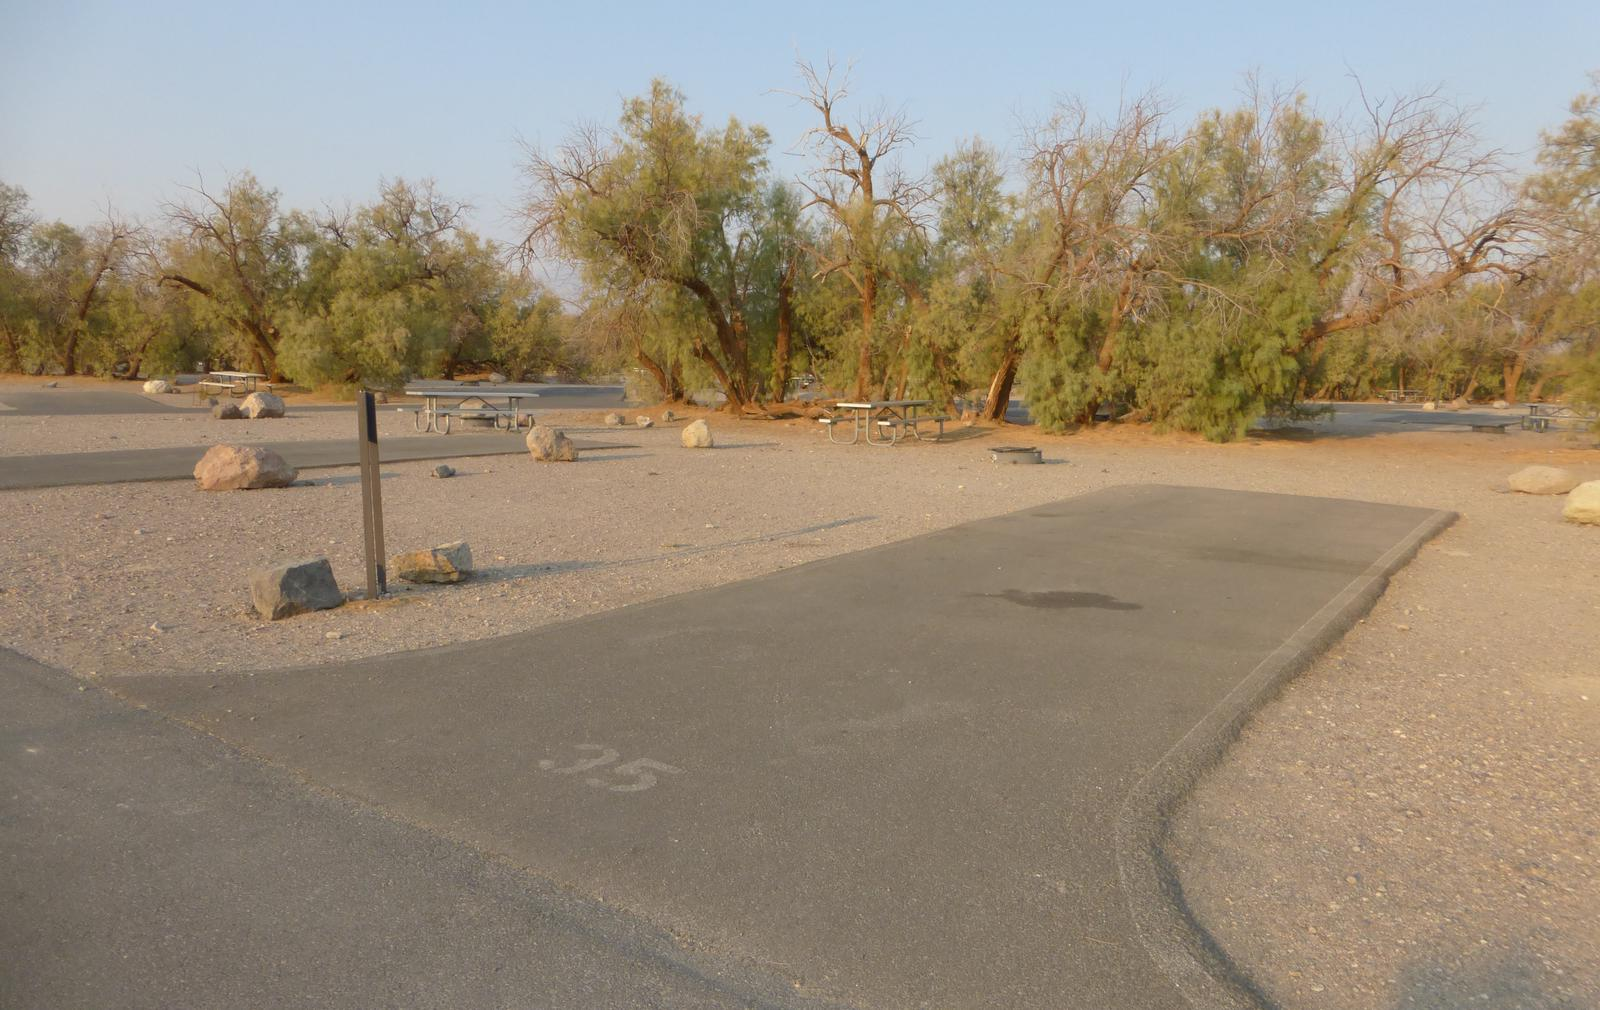 Furnace Creek Campground standard nonelectric site #35 with picnic table and fire ring.